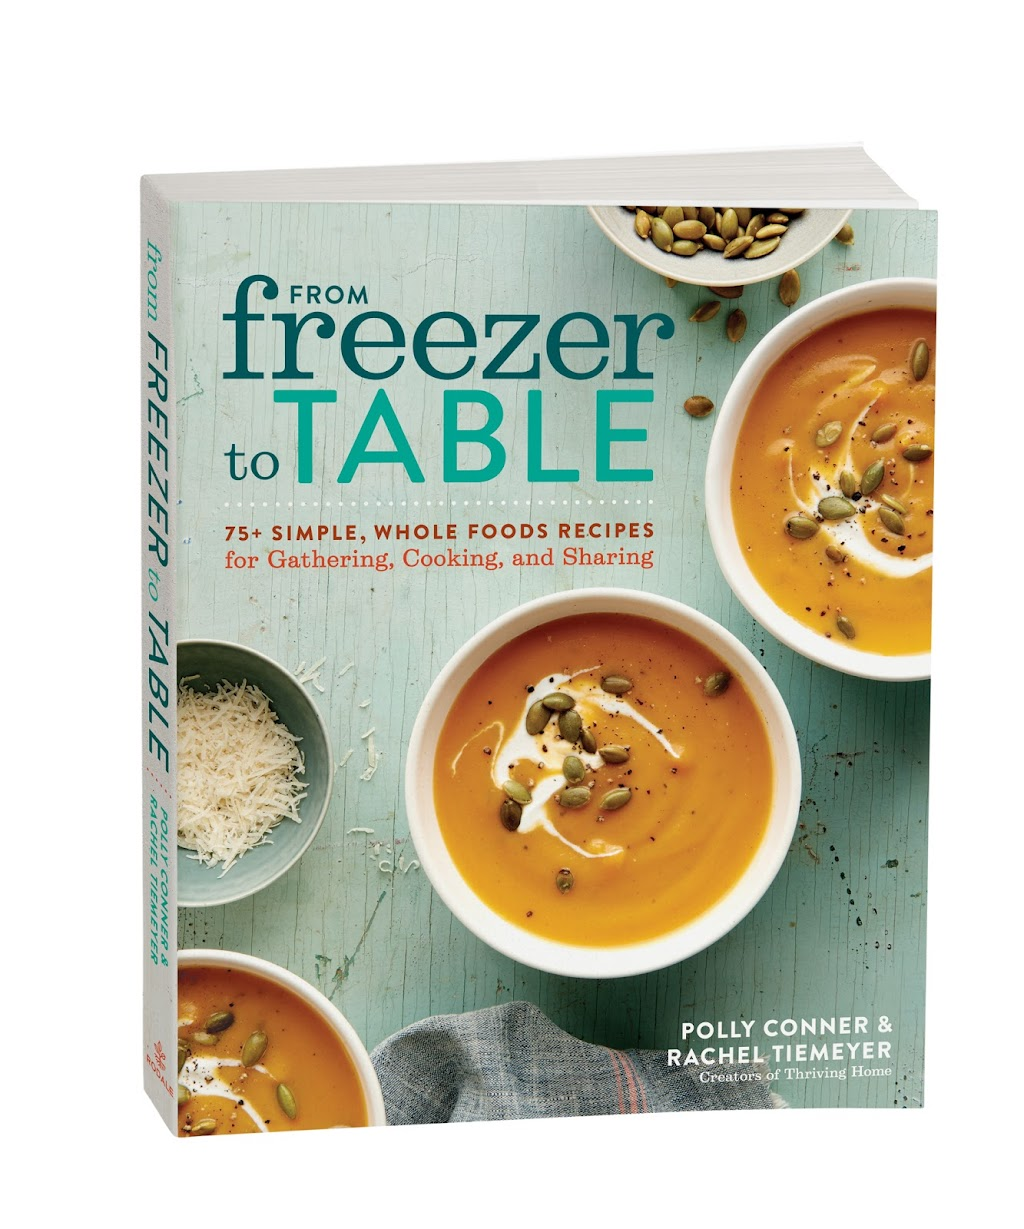 In from Freezer to Table, Rachel and Polly share the ultimate guidebook for transforming the way your family cooks, eats, and freezes. The chapters are packed with freezer cooking basics, practical tips for Freezer Cooking Parties or Freezer Clubs, and plenty of motivation and tools to make freezer cooking second nature in your home. With their 75+ simple, family-friendly recipes―all made from whole food ingredients―anyone can stock their freezer with wholesome favorites, like mixed berry scones, homemade chicken tenders, and slow-cooker carnitas. From Freezer to Table will help you reclaim your kitchen from unhealthy processed foods, while simultaneously saving your wallet, your waistline, and your time.